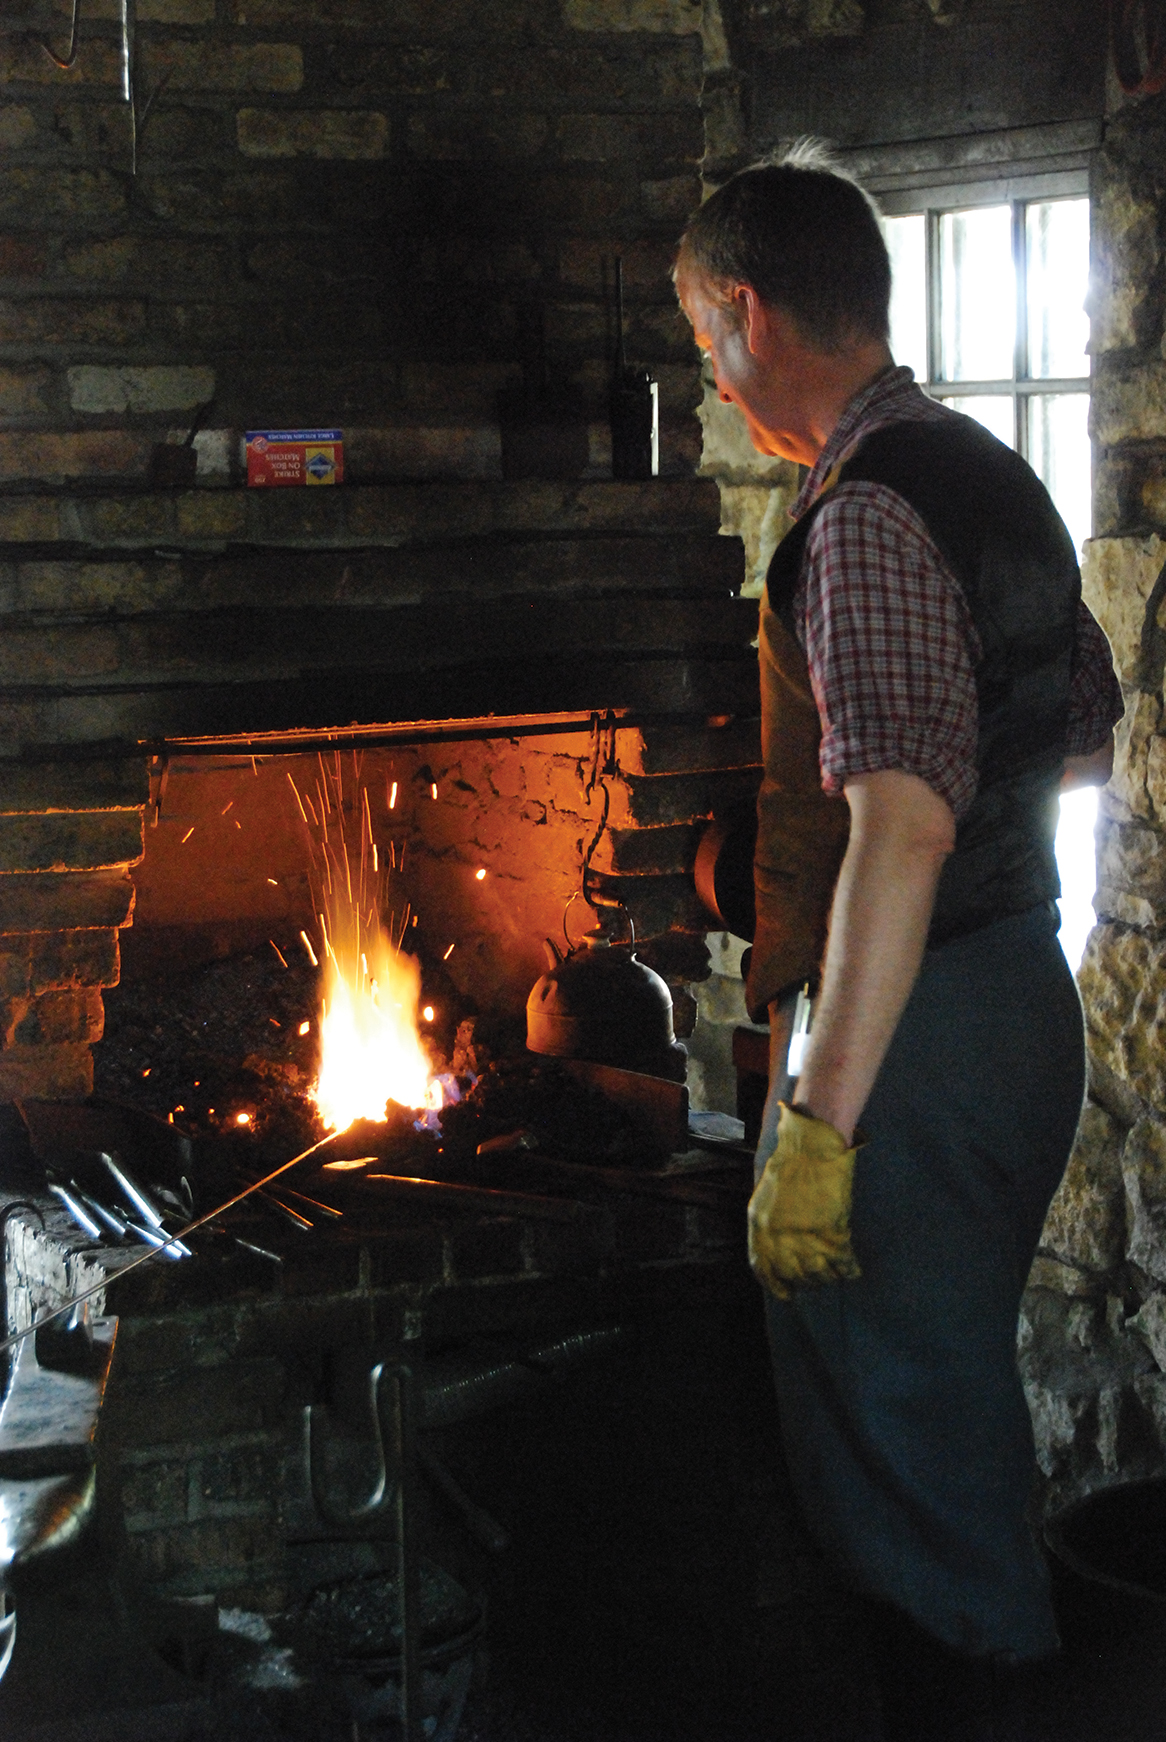 Blacksmith working at forge in Blacksmith Shop